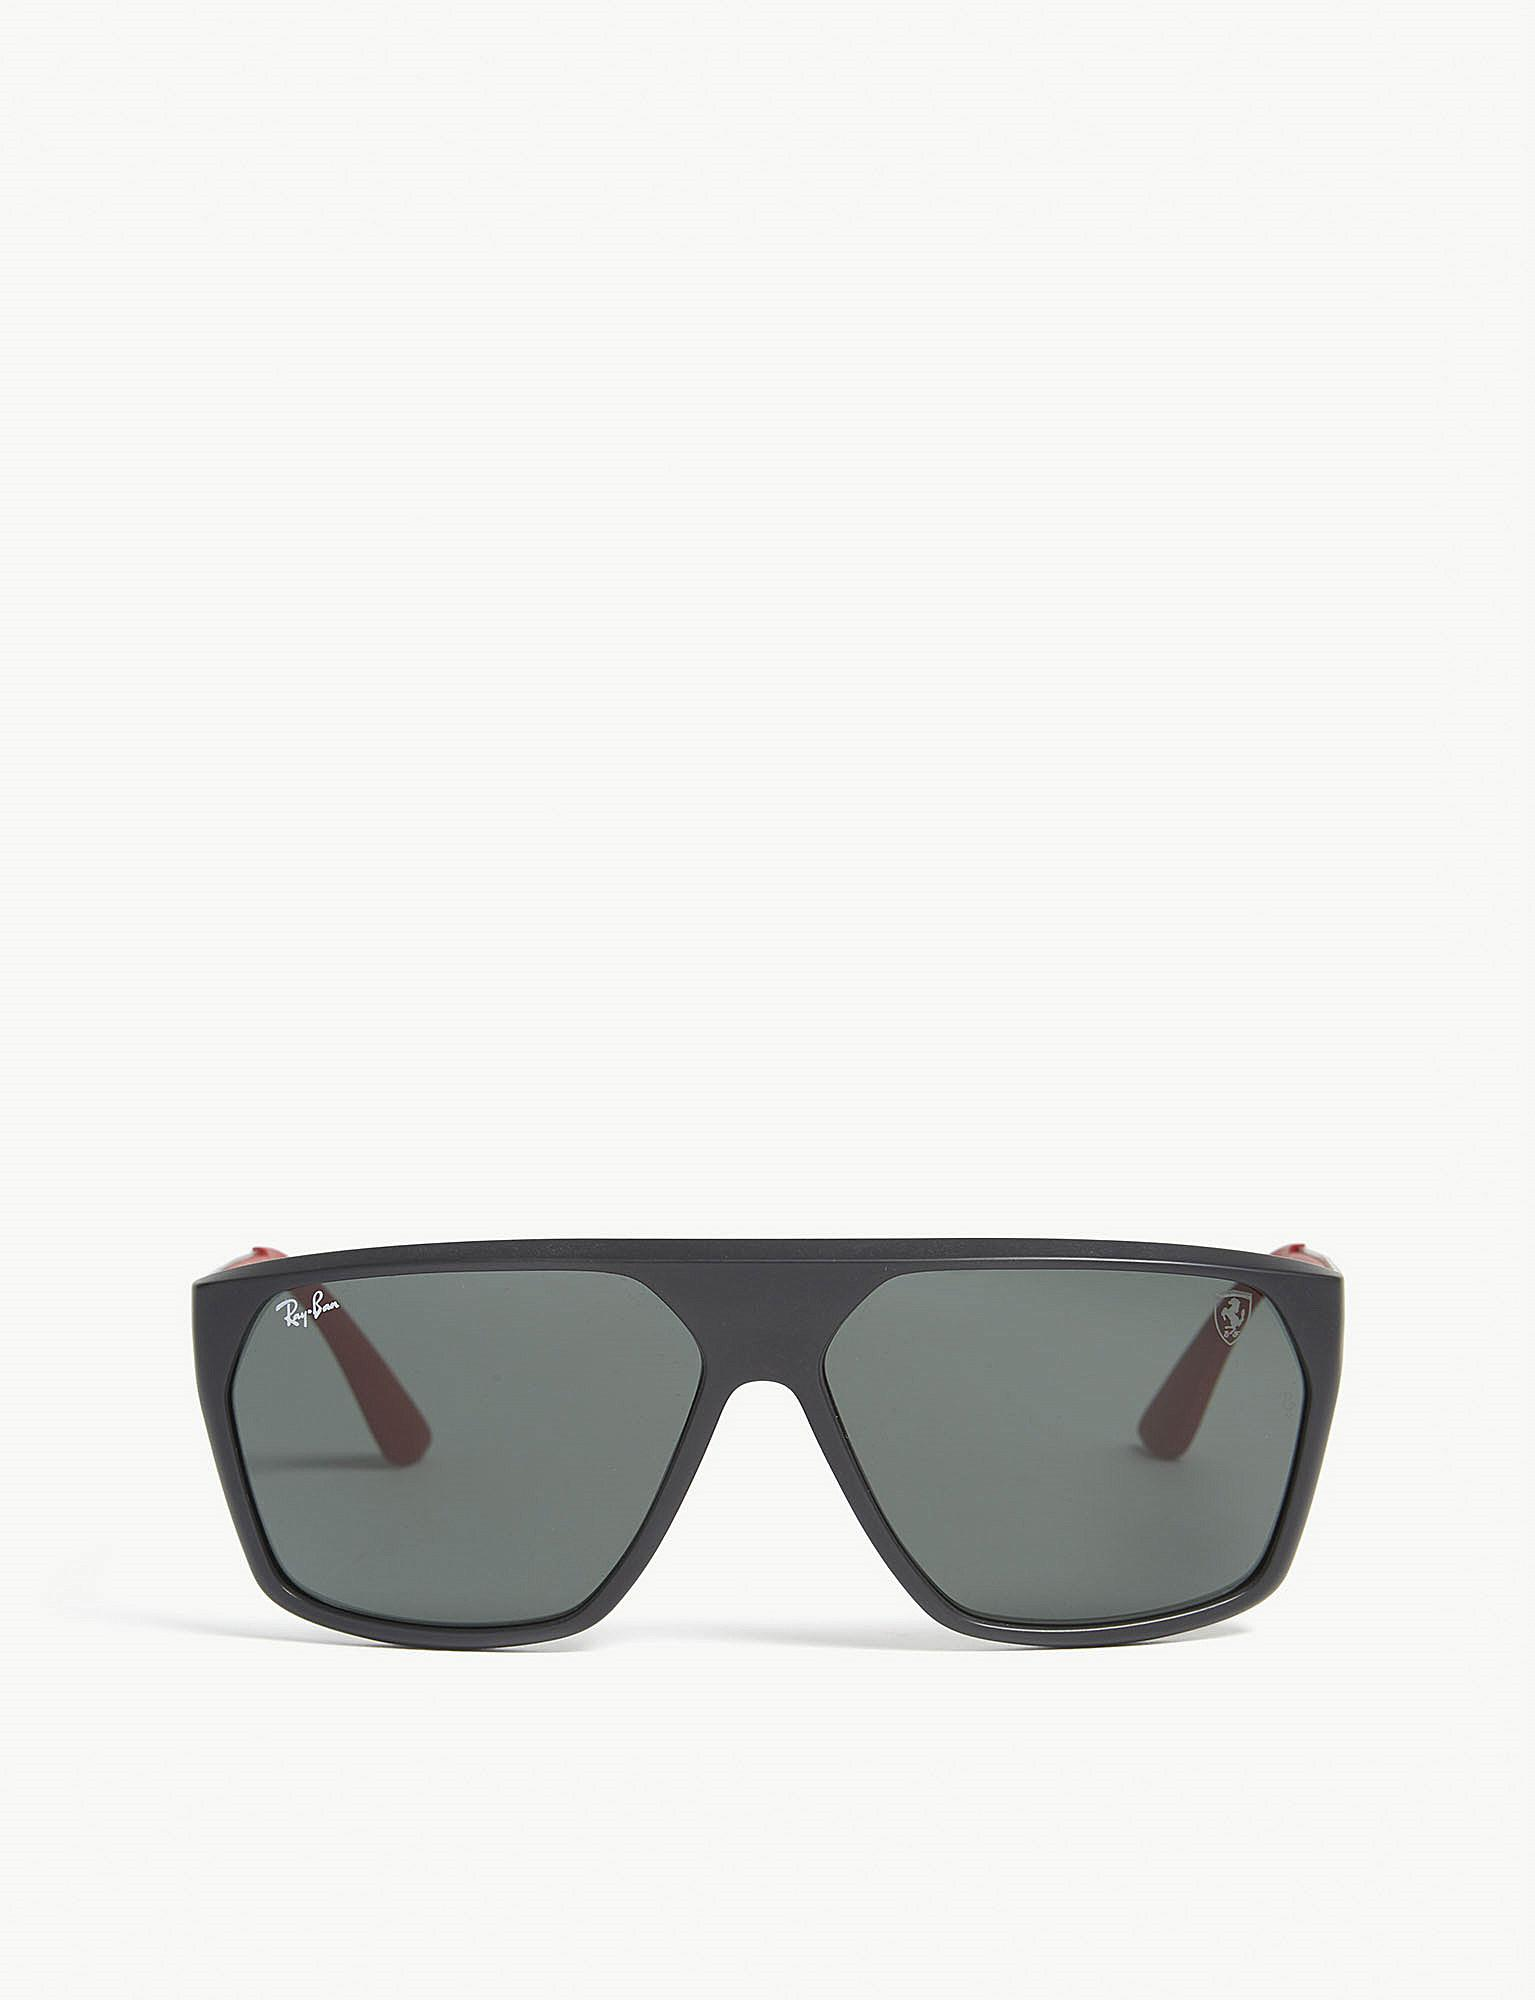 6944a6969c9 Lyst - Ray-Ban Rb4309 Square-frame Sunglasses in Black